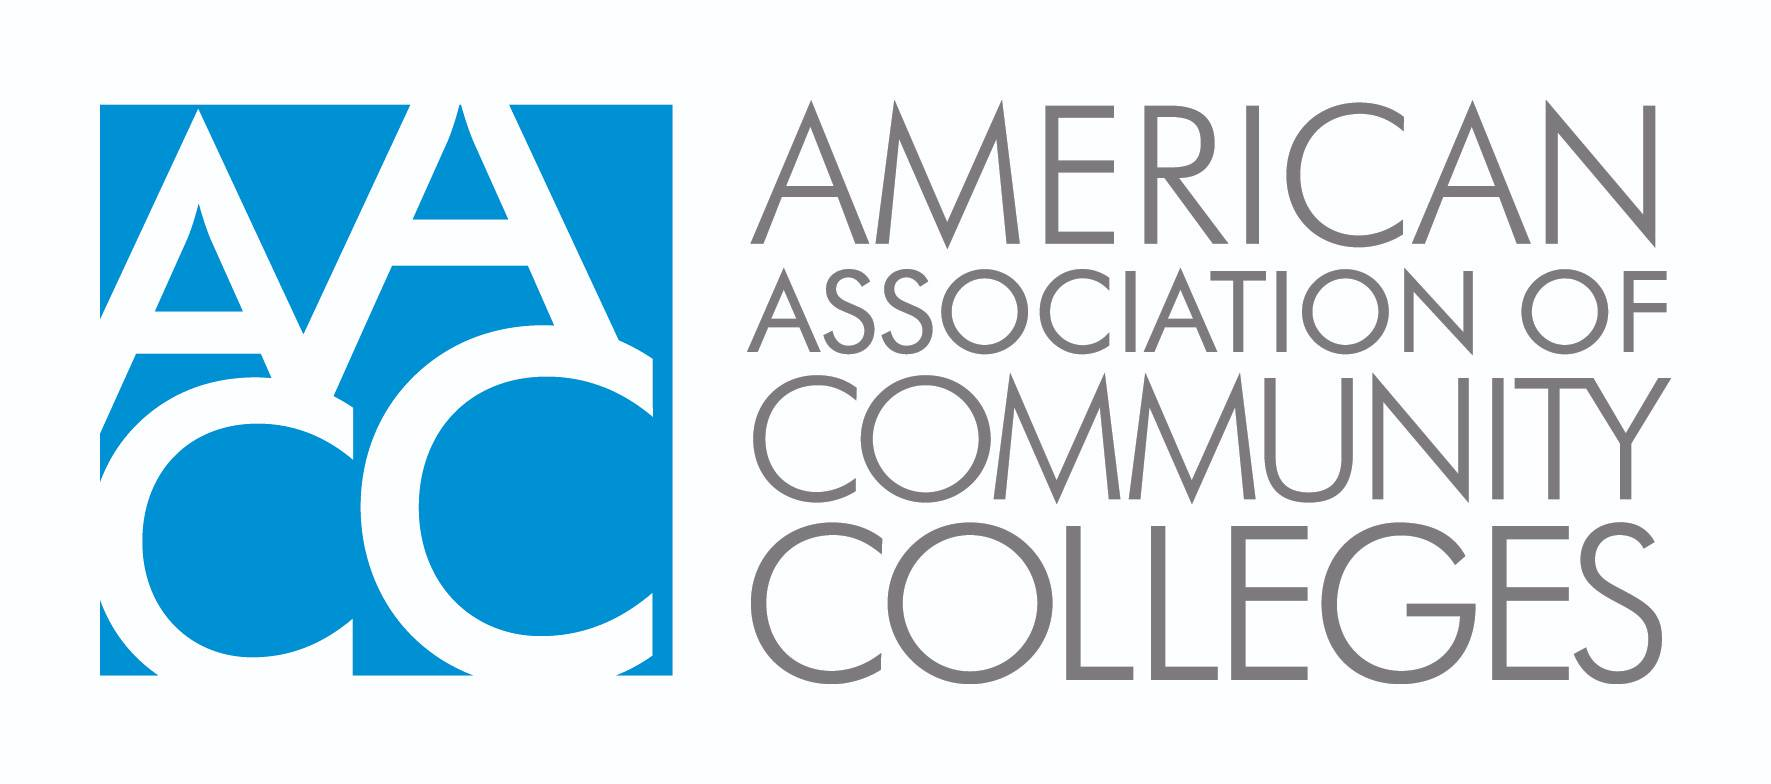 American Association of Community Colleges (AACC) logo